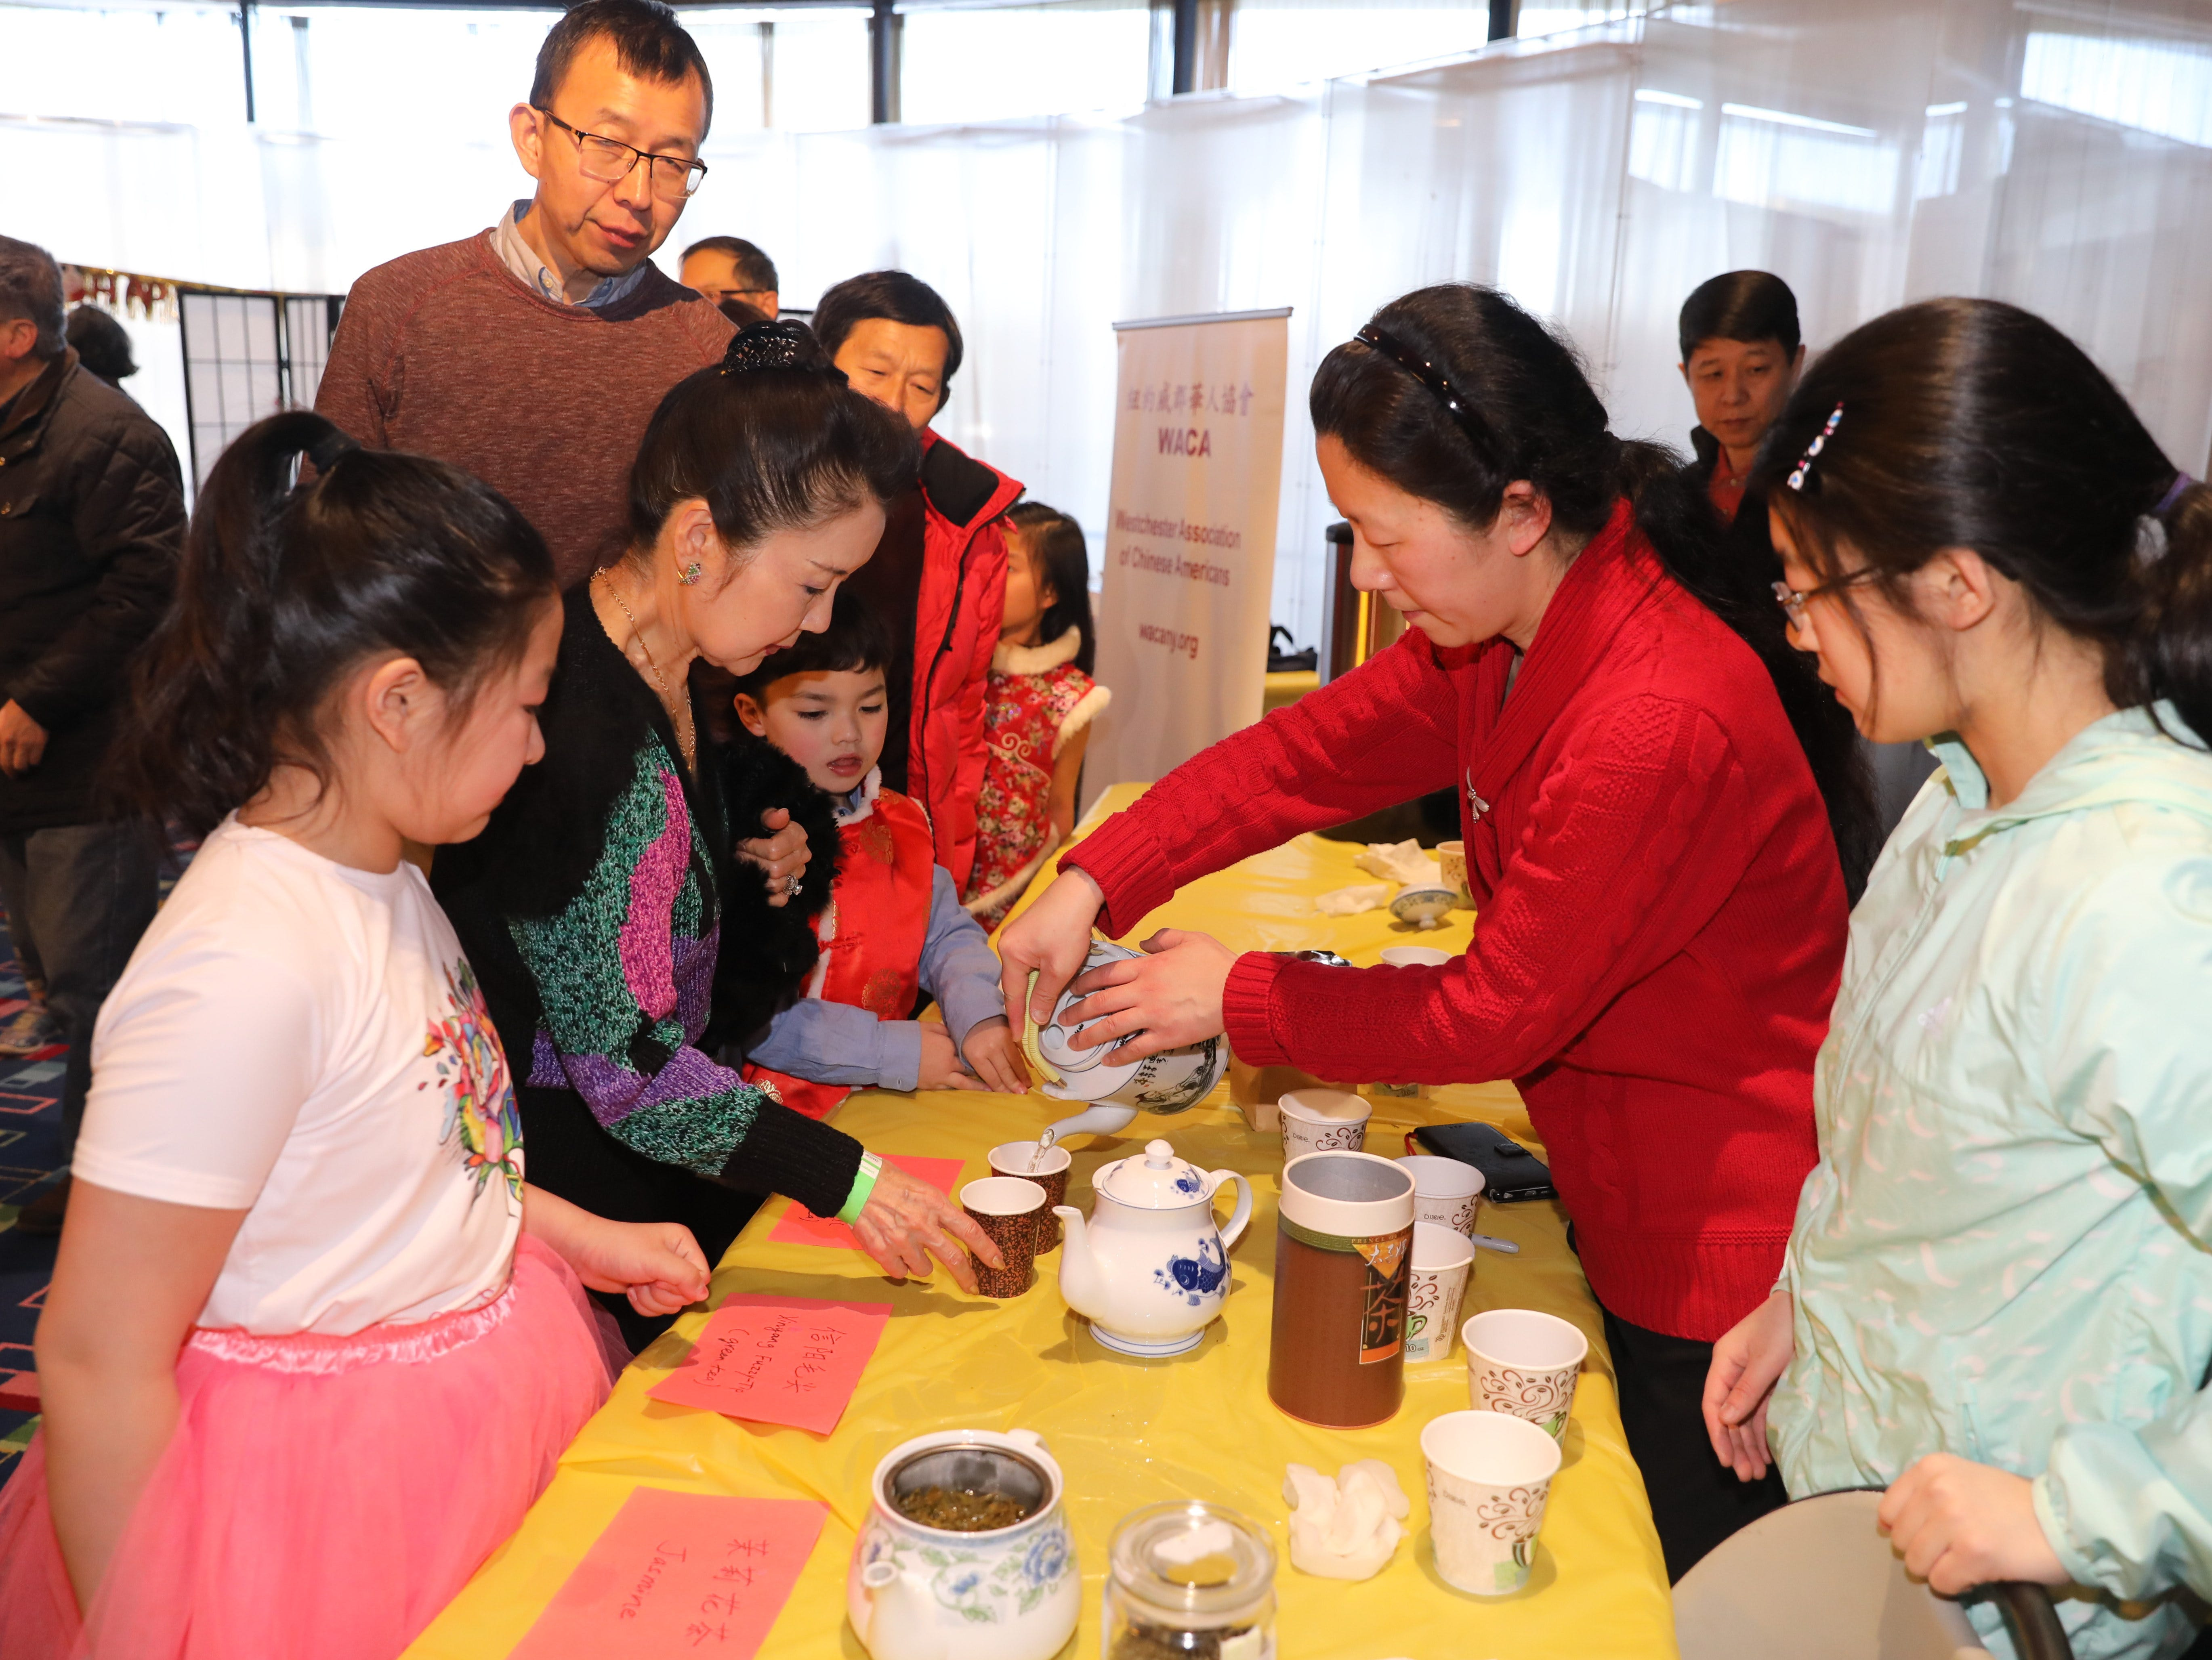 Zoe Xiong, pours authentic Chinese teas, during the 30th Chinese New Year Festival, the Year of the Pig, sponsored by WACA (Westchester Association of Chinese Americans), at The Performing Arts Center at Purchase College SUNY, Feb. 9, 2019.